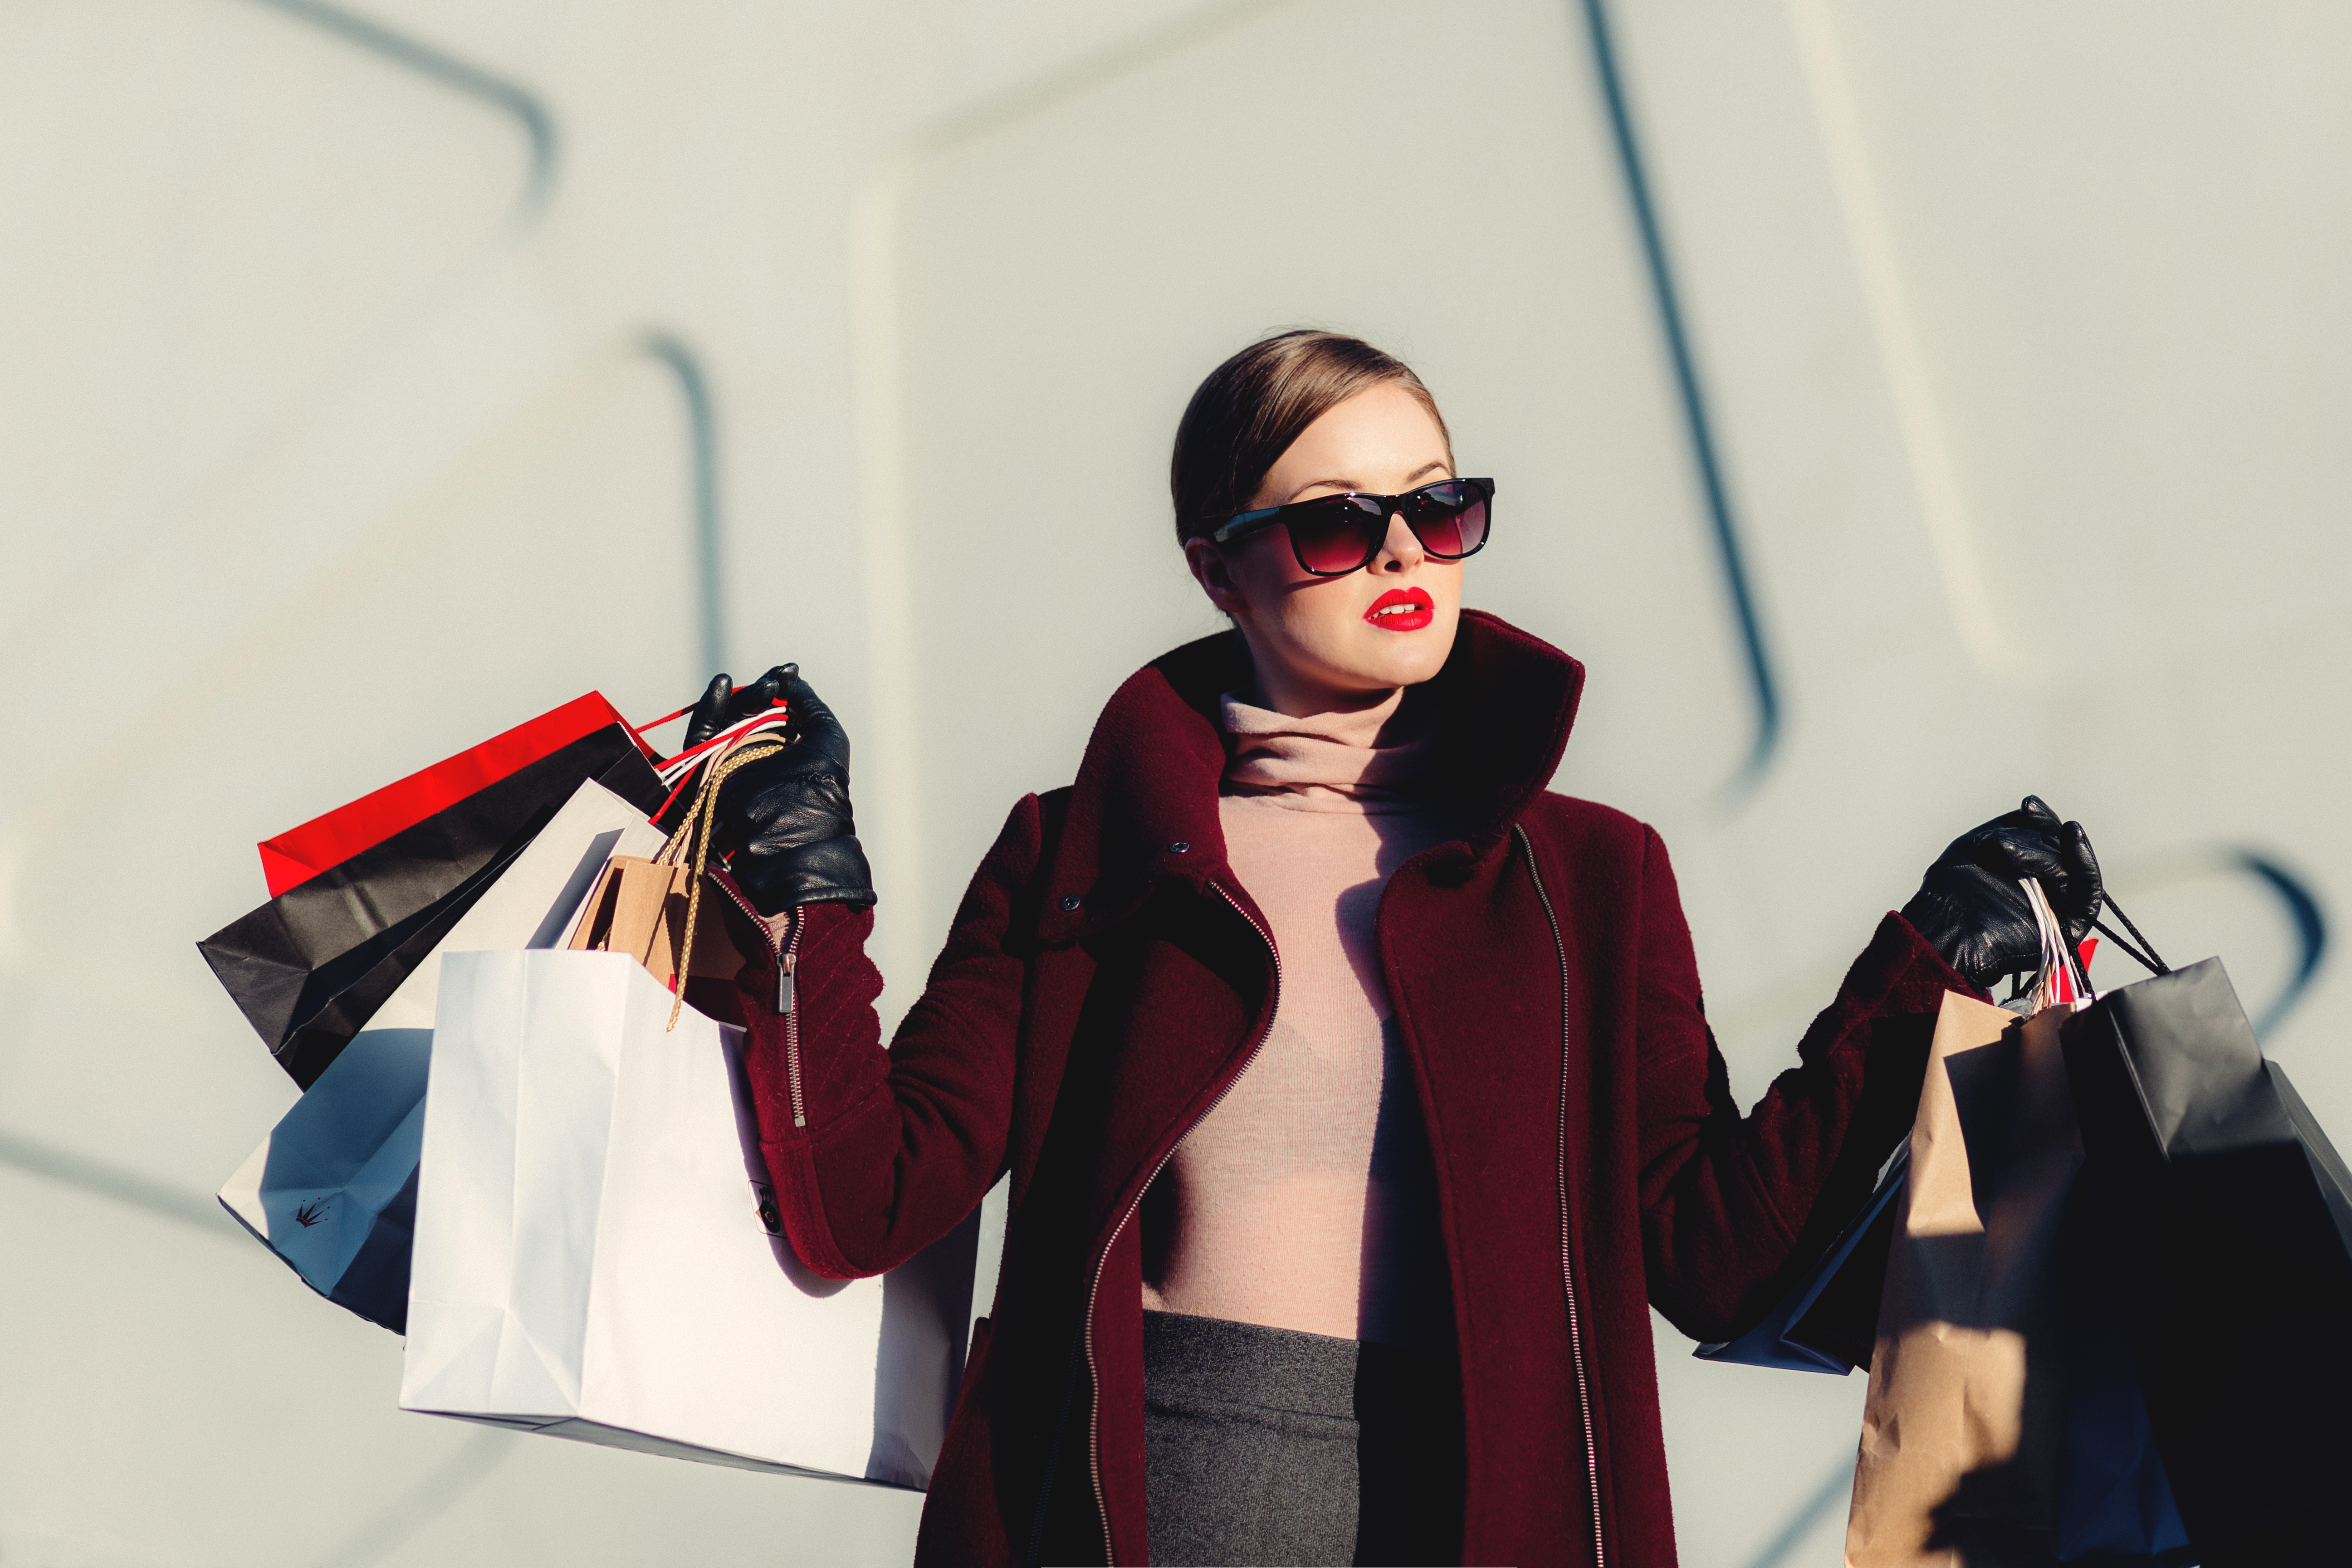 Status consumption includes buying high-end clothes